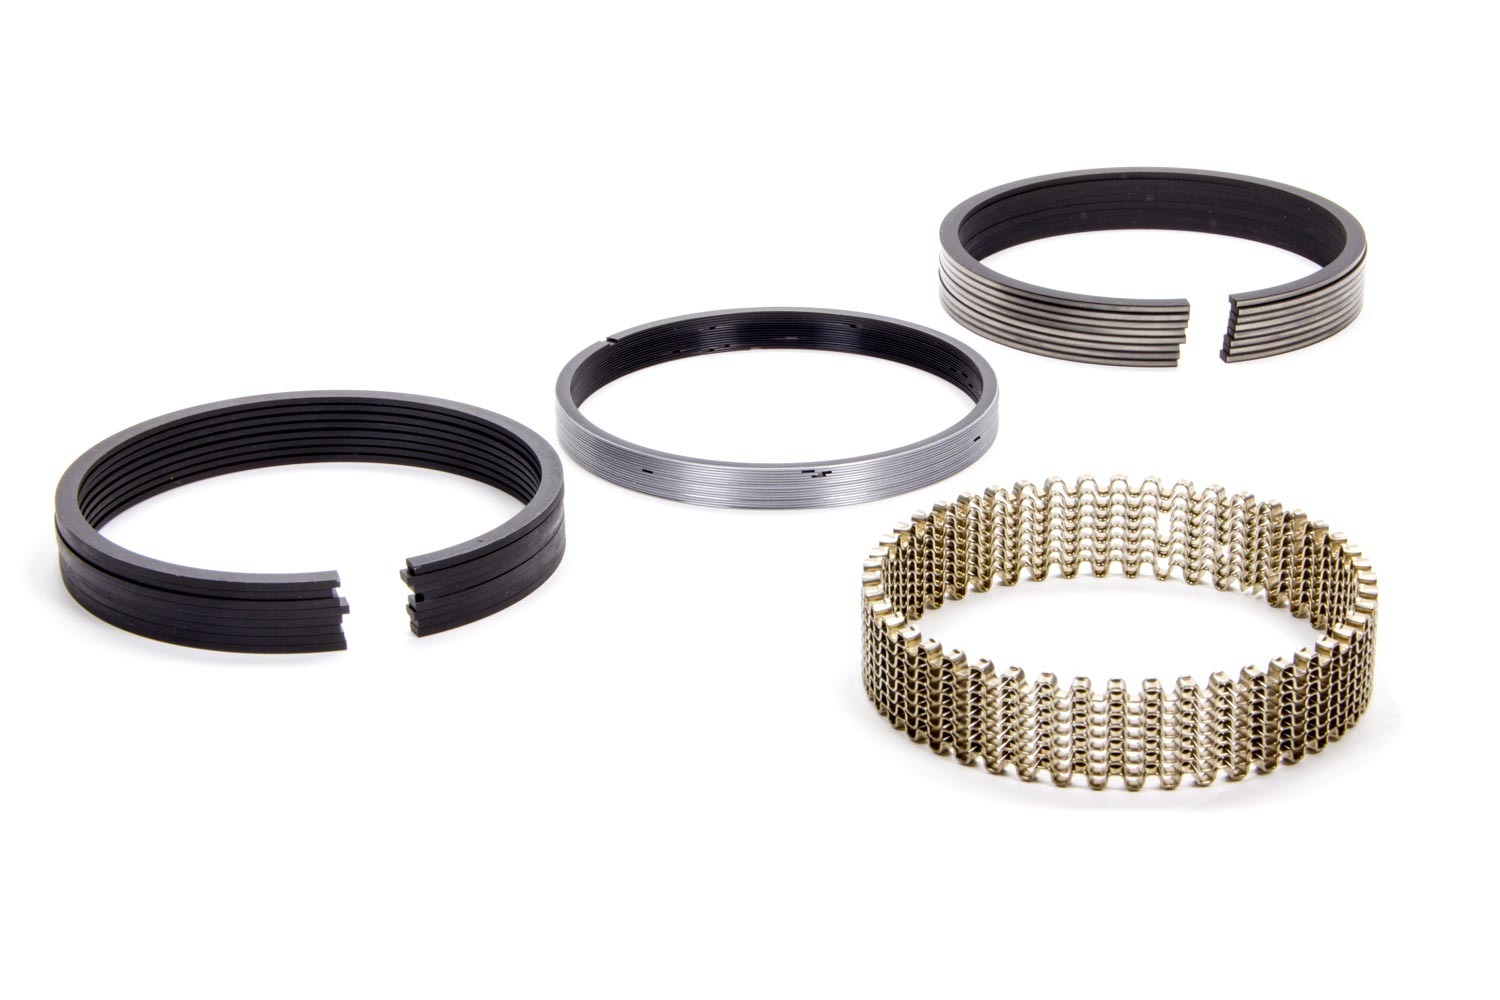 Hastings 2M139030 Piston Rings, 4.030 in Bore, 5/64 x 5/64 x 3/16 in Thick, Standard Tension, Moly, 8 Cylinder, Kit